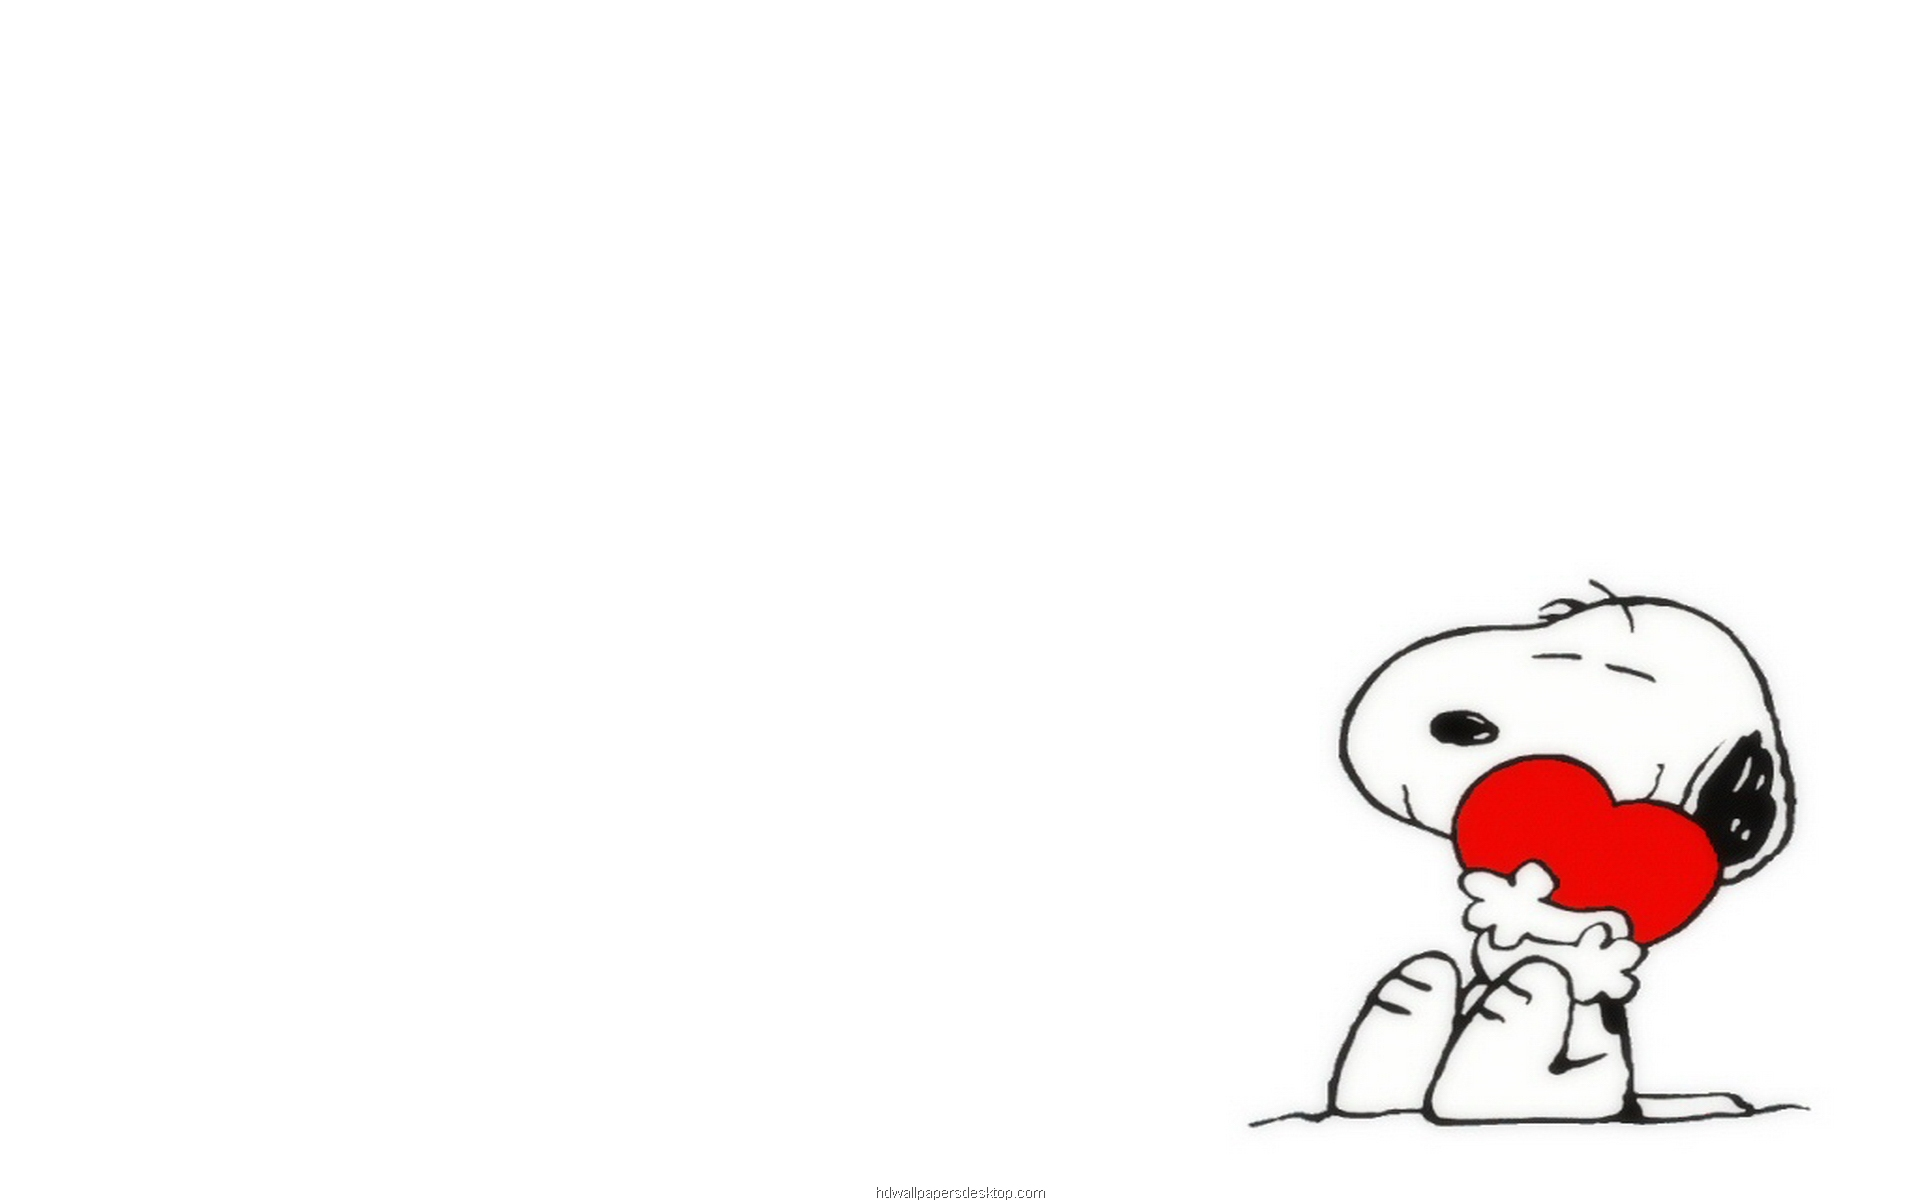 Download image Snoopy Spring Desktop Wallpaper PC Android 1920x1200